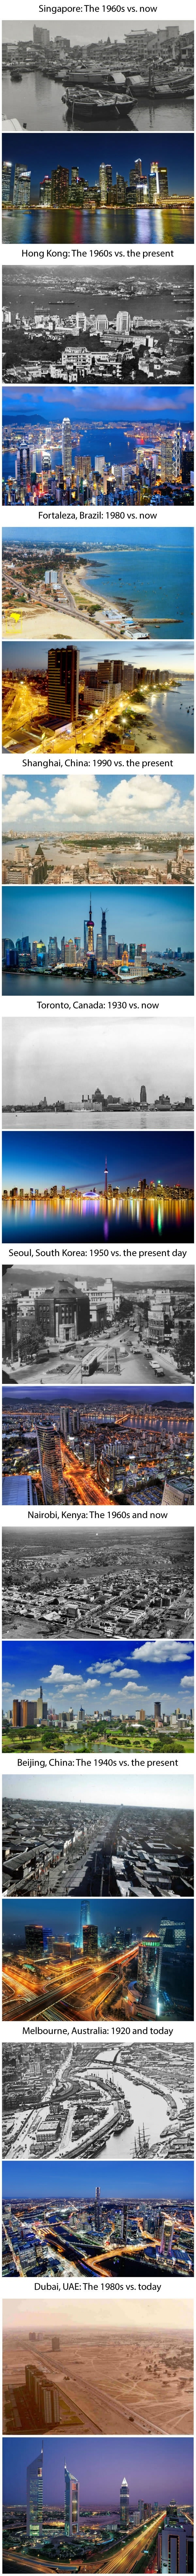 Incredible cities which have changed beyond recognition